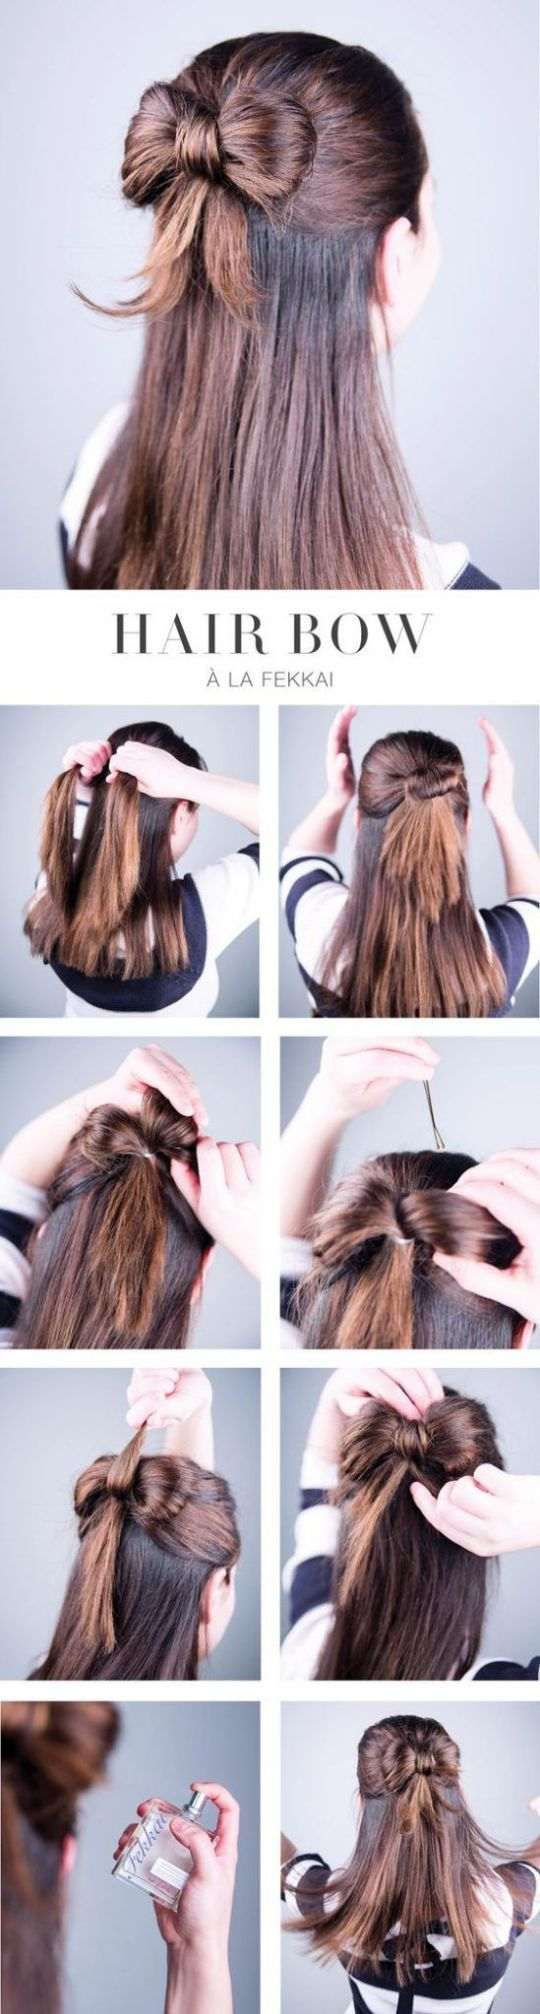 Easy half up half down hairstyles hair bow wedding hairstyles for